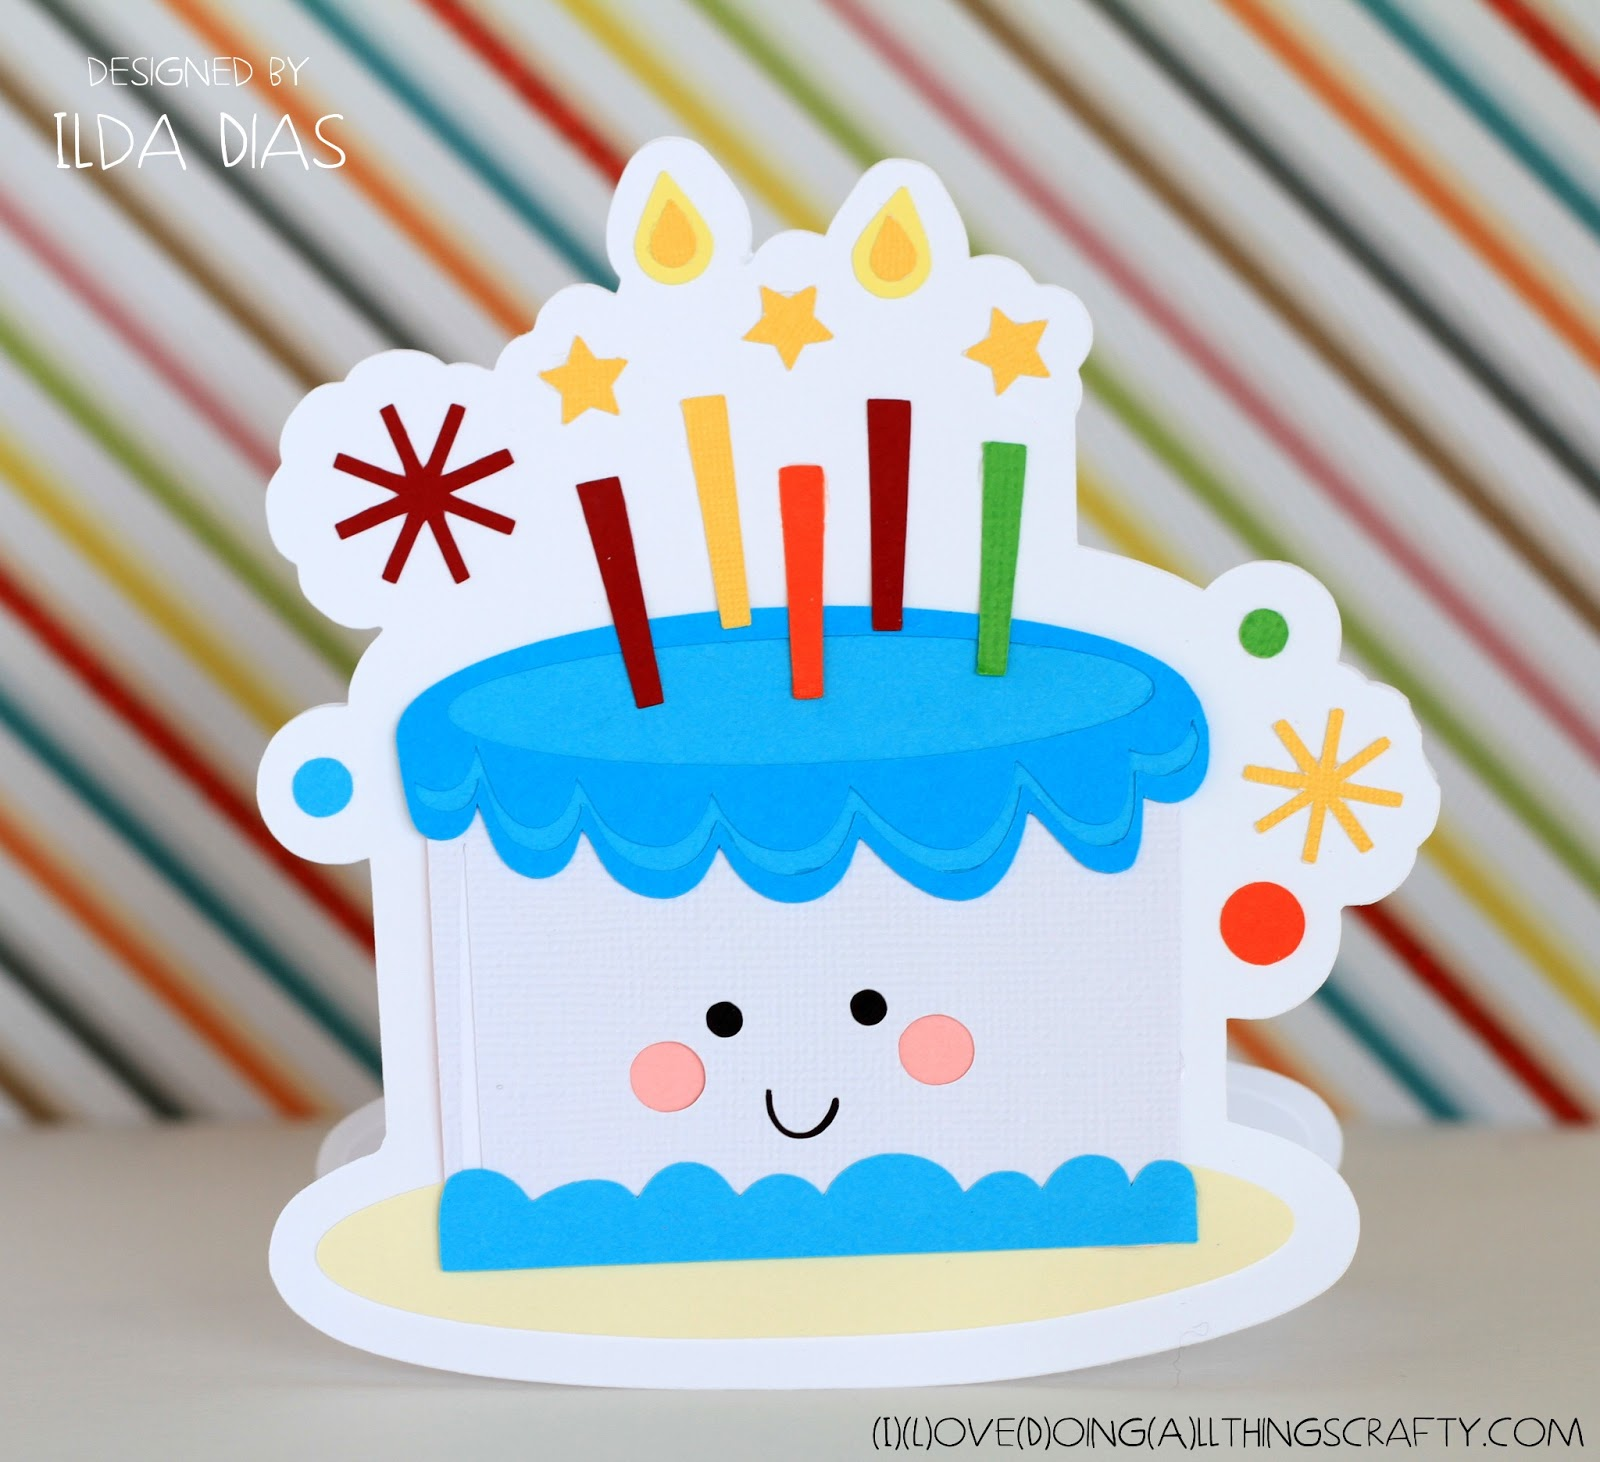 I Love Doing All Things Crafty Happy Birthday Cake Shaped Card And